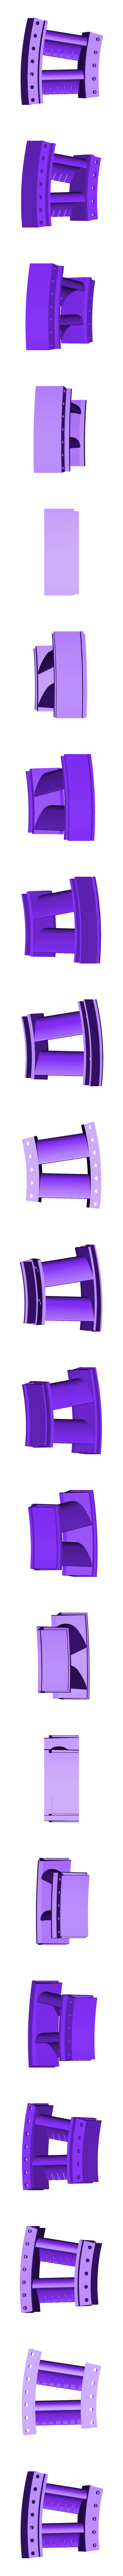 Turb-Nozzle101ws.stl Download STL file Jet Engine Component (2); Axial Turbine • 3D print template, konchan77